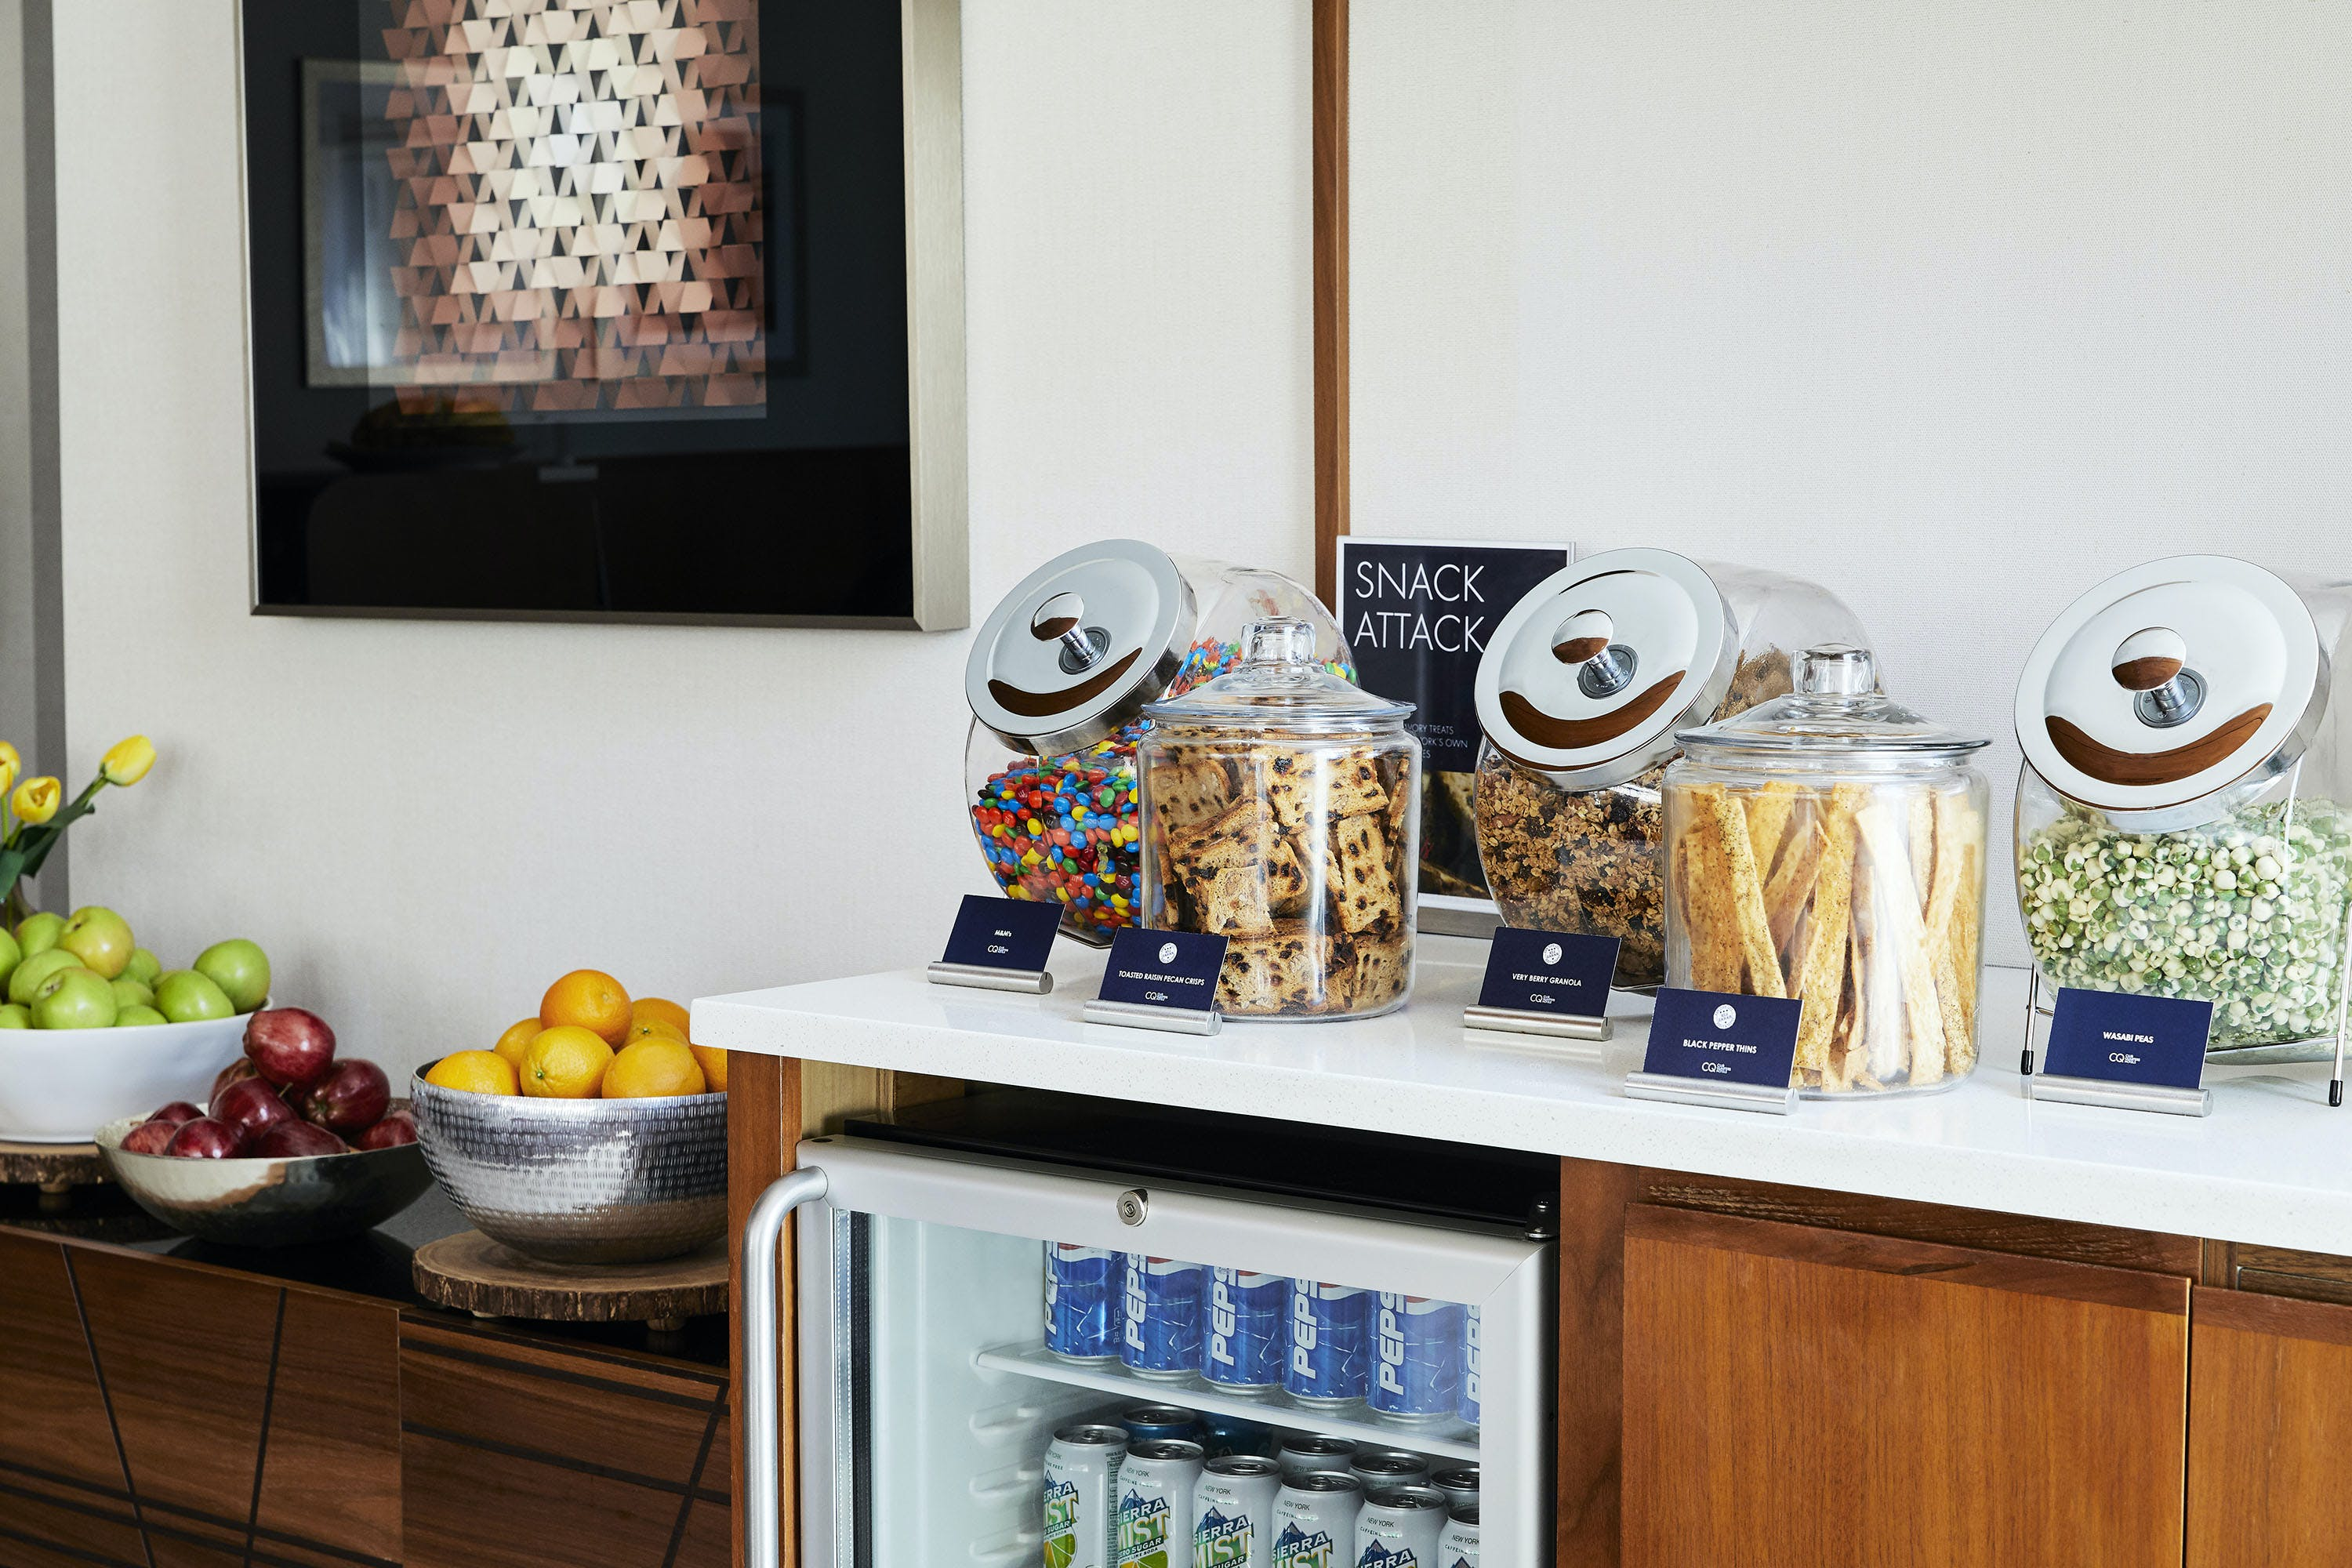 Free snacks and beverages in the Club Living Room at Club Quarters Hotel, Grand Central